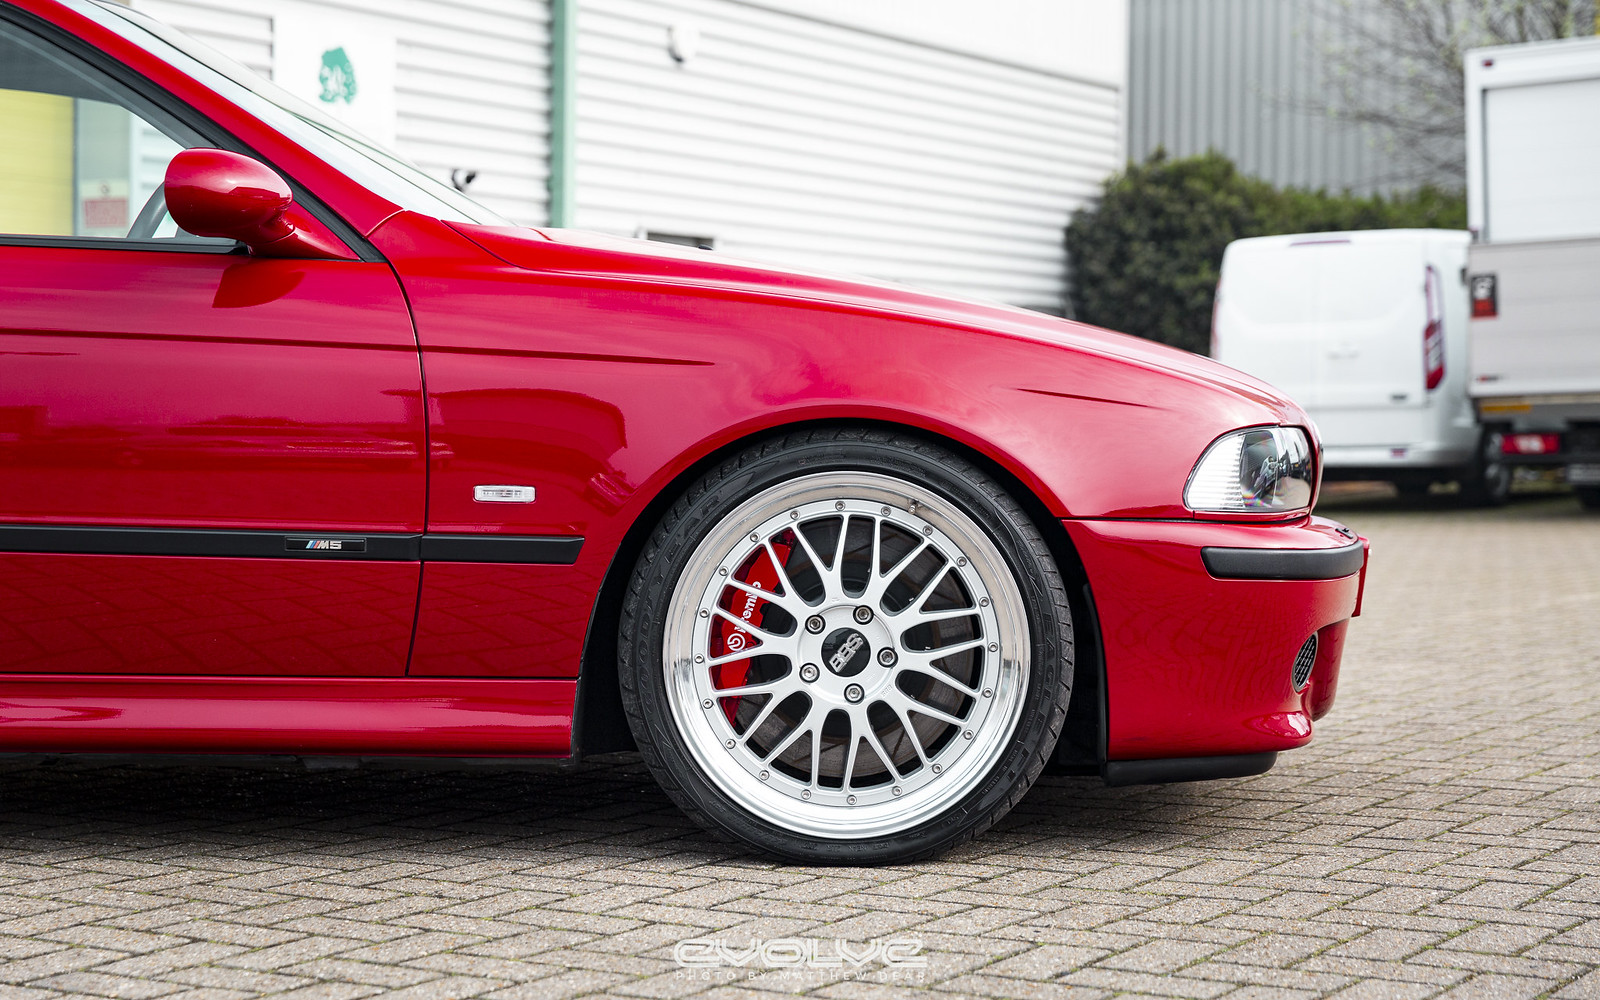 Imola Red E39 M5 Evolve Supercharged - BMW 3-Series and 4